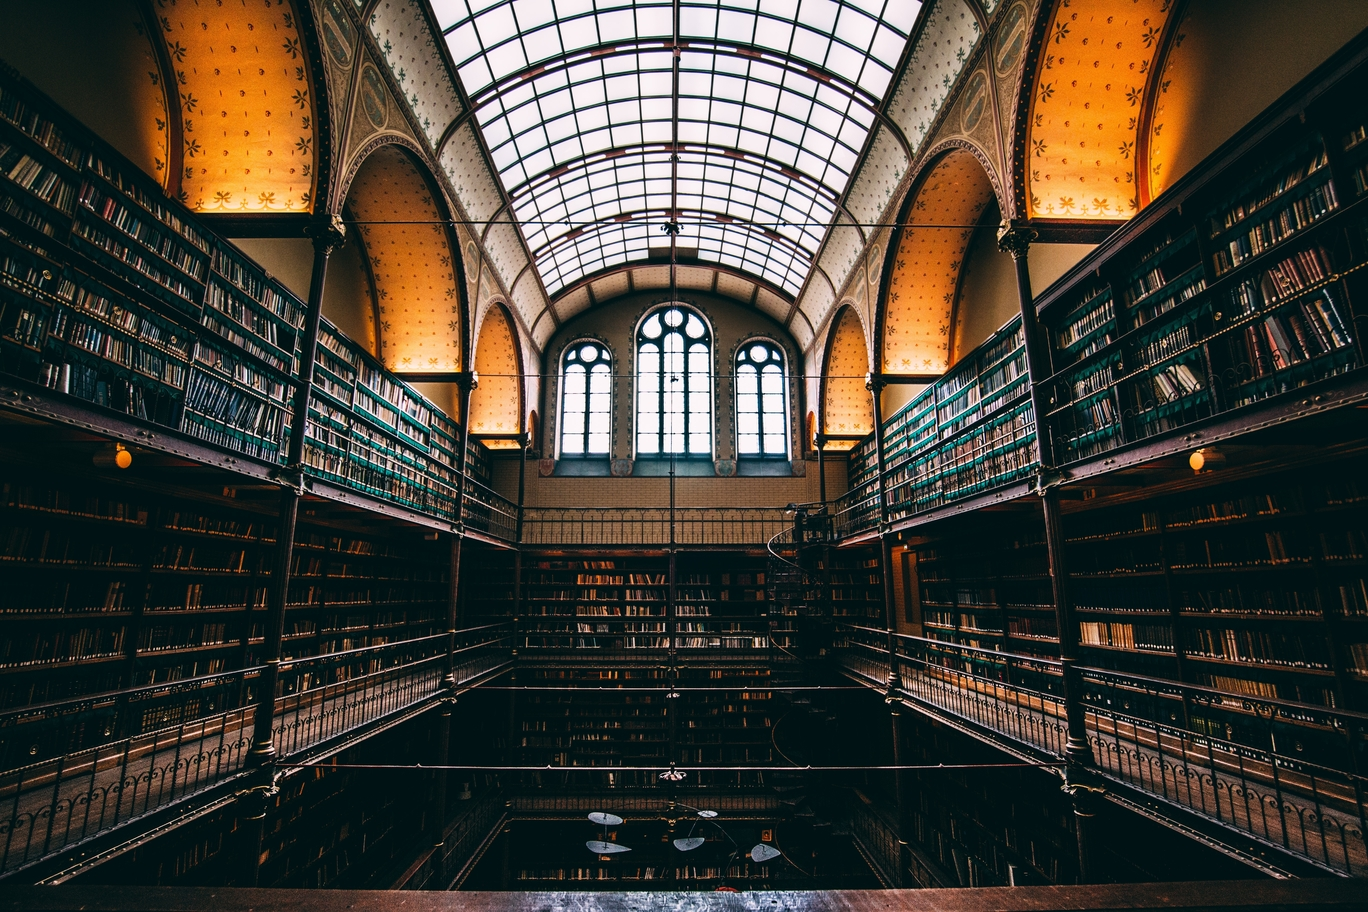 A library in the Rijksmuseum